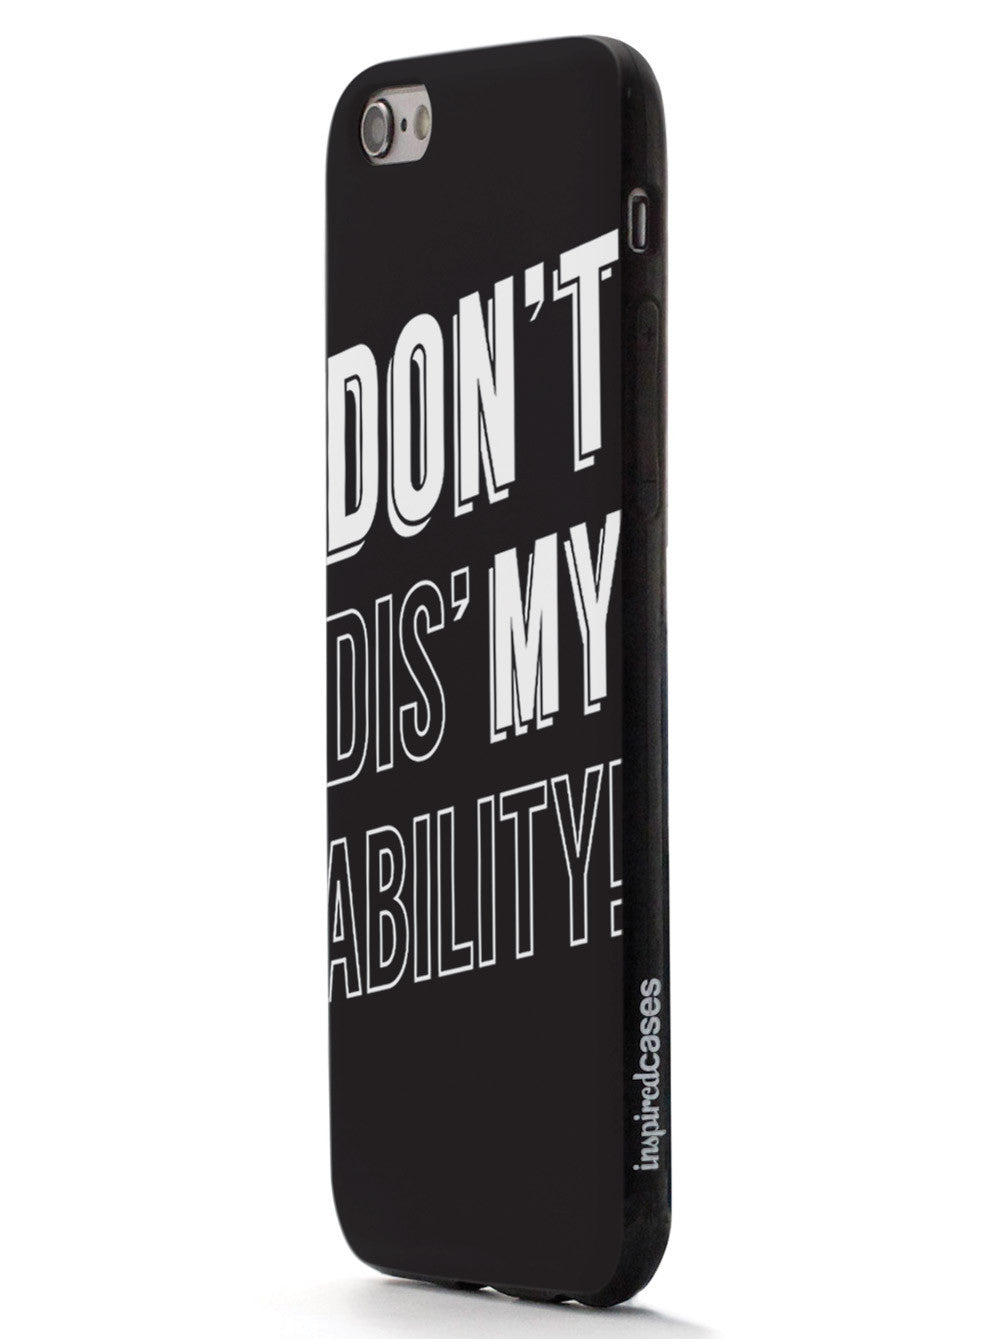 Don't Dis' My Ability Case